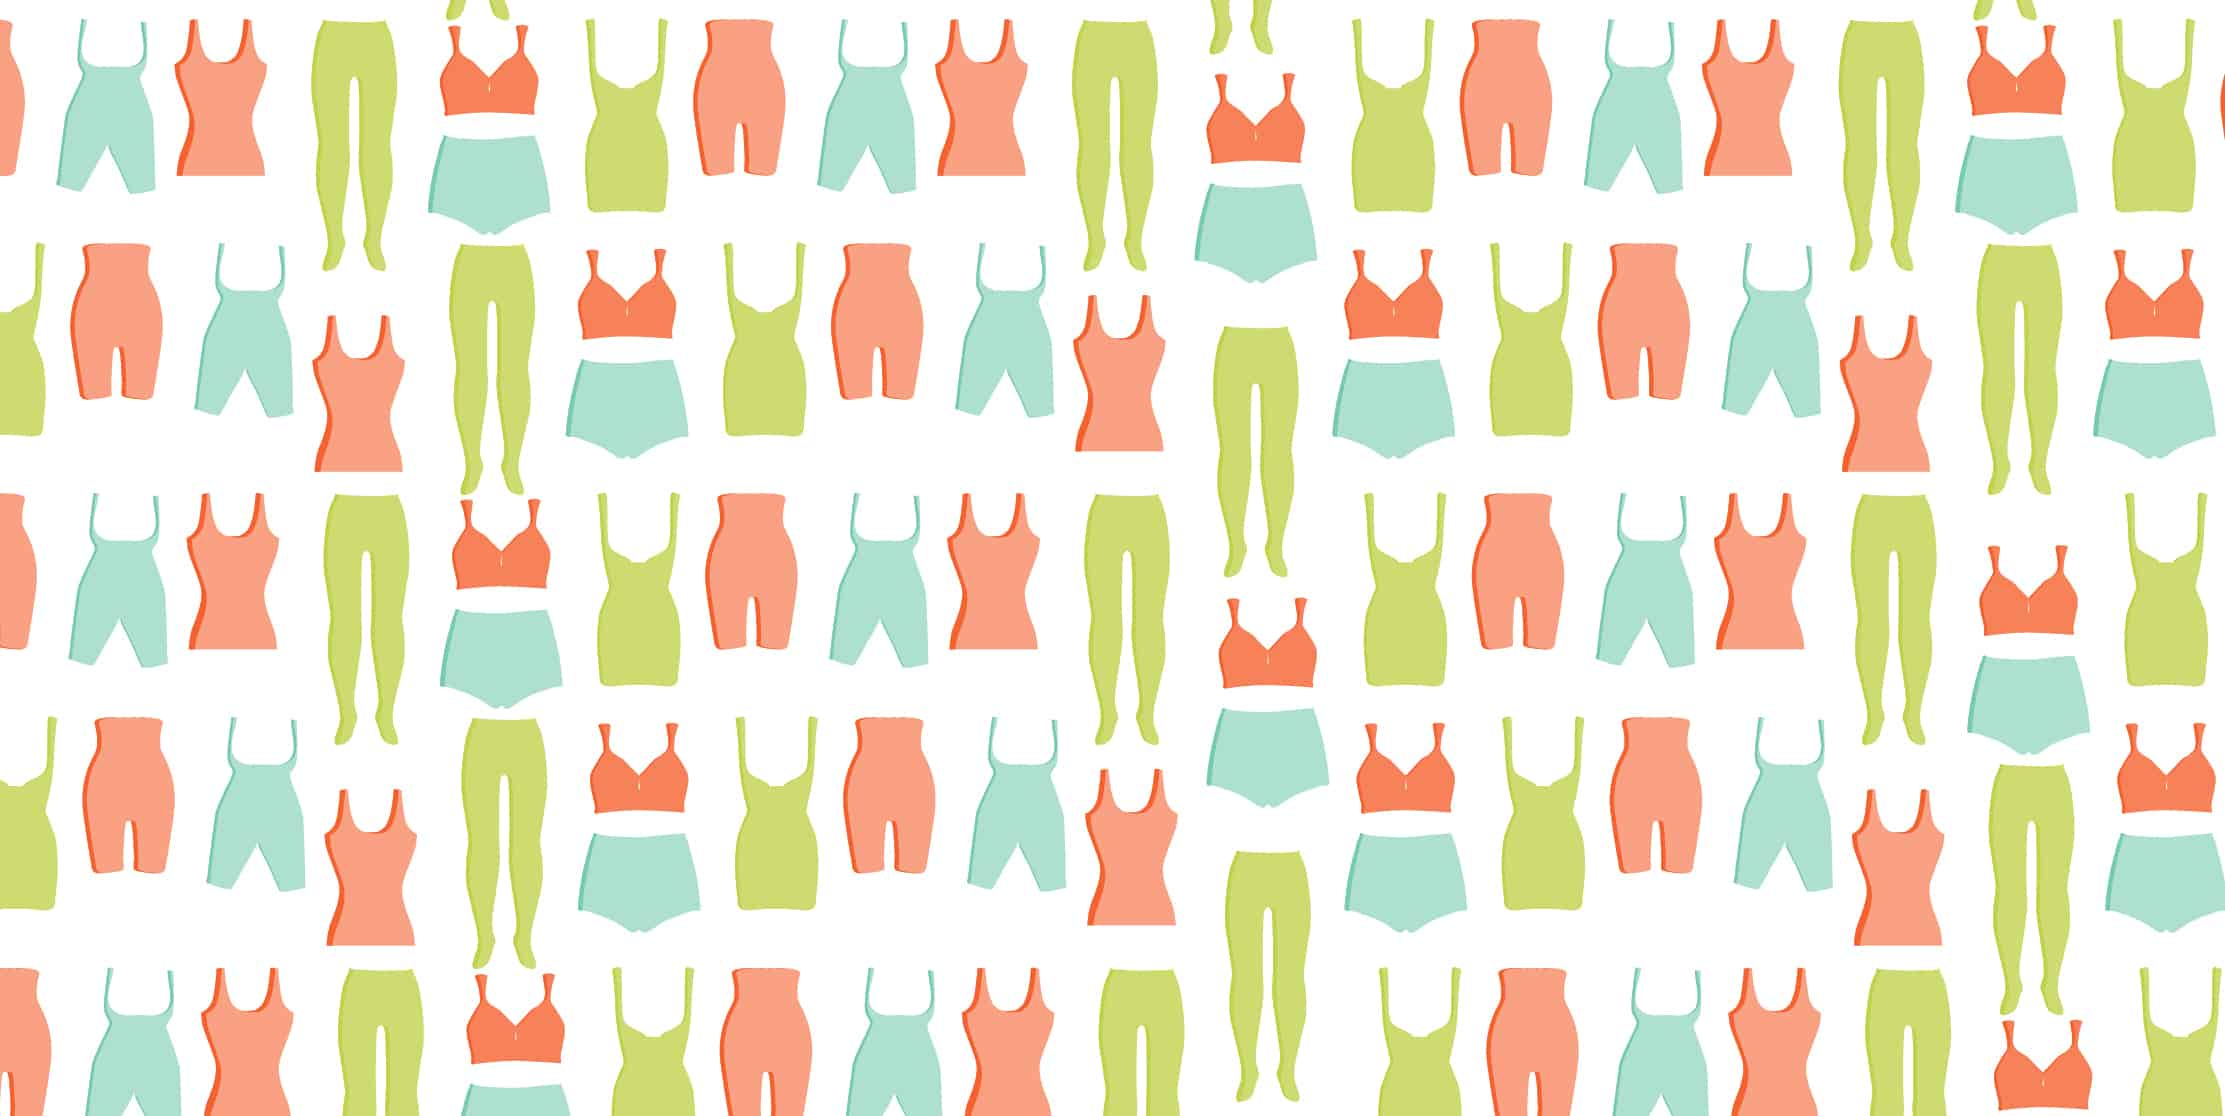 How to Choose, Wear, and Take Care of Shapewear Infographic